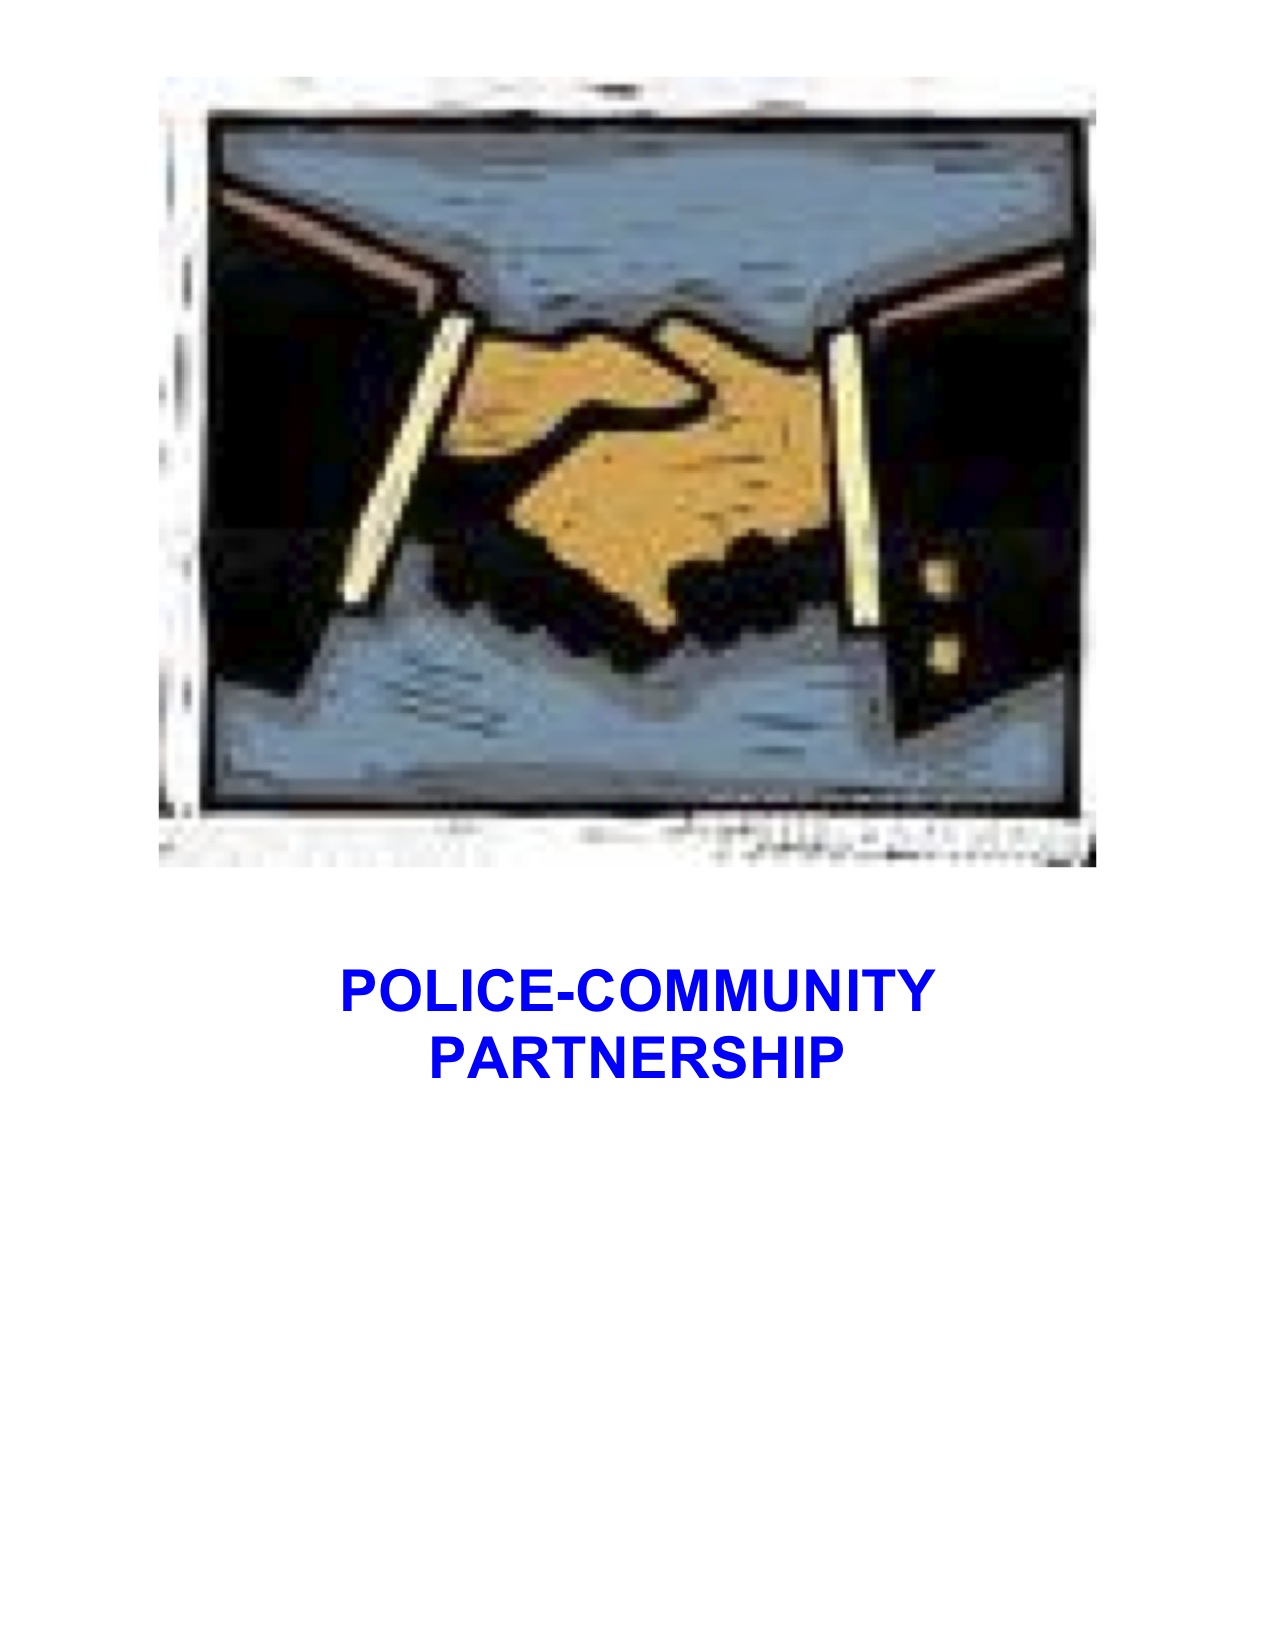 109TH PRECINCT COMMUNITY COUNCIL